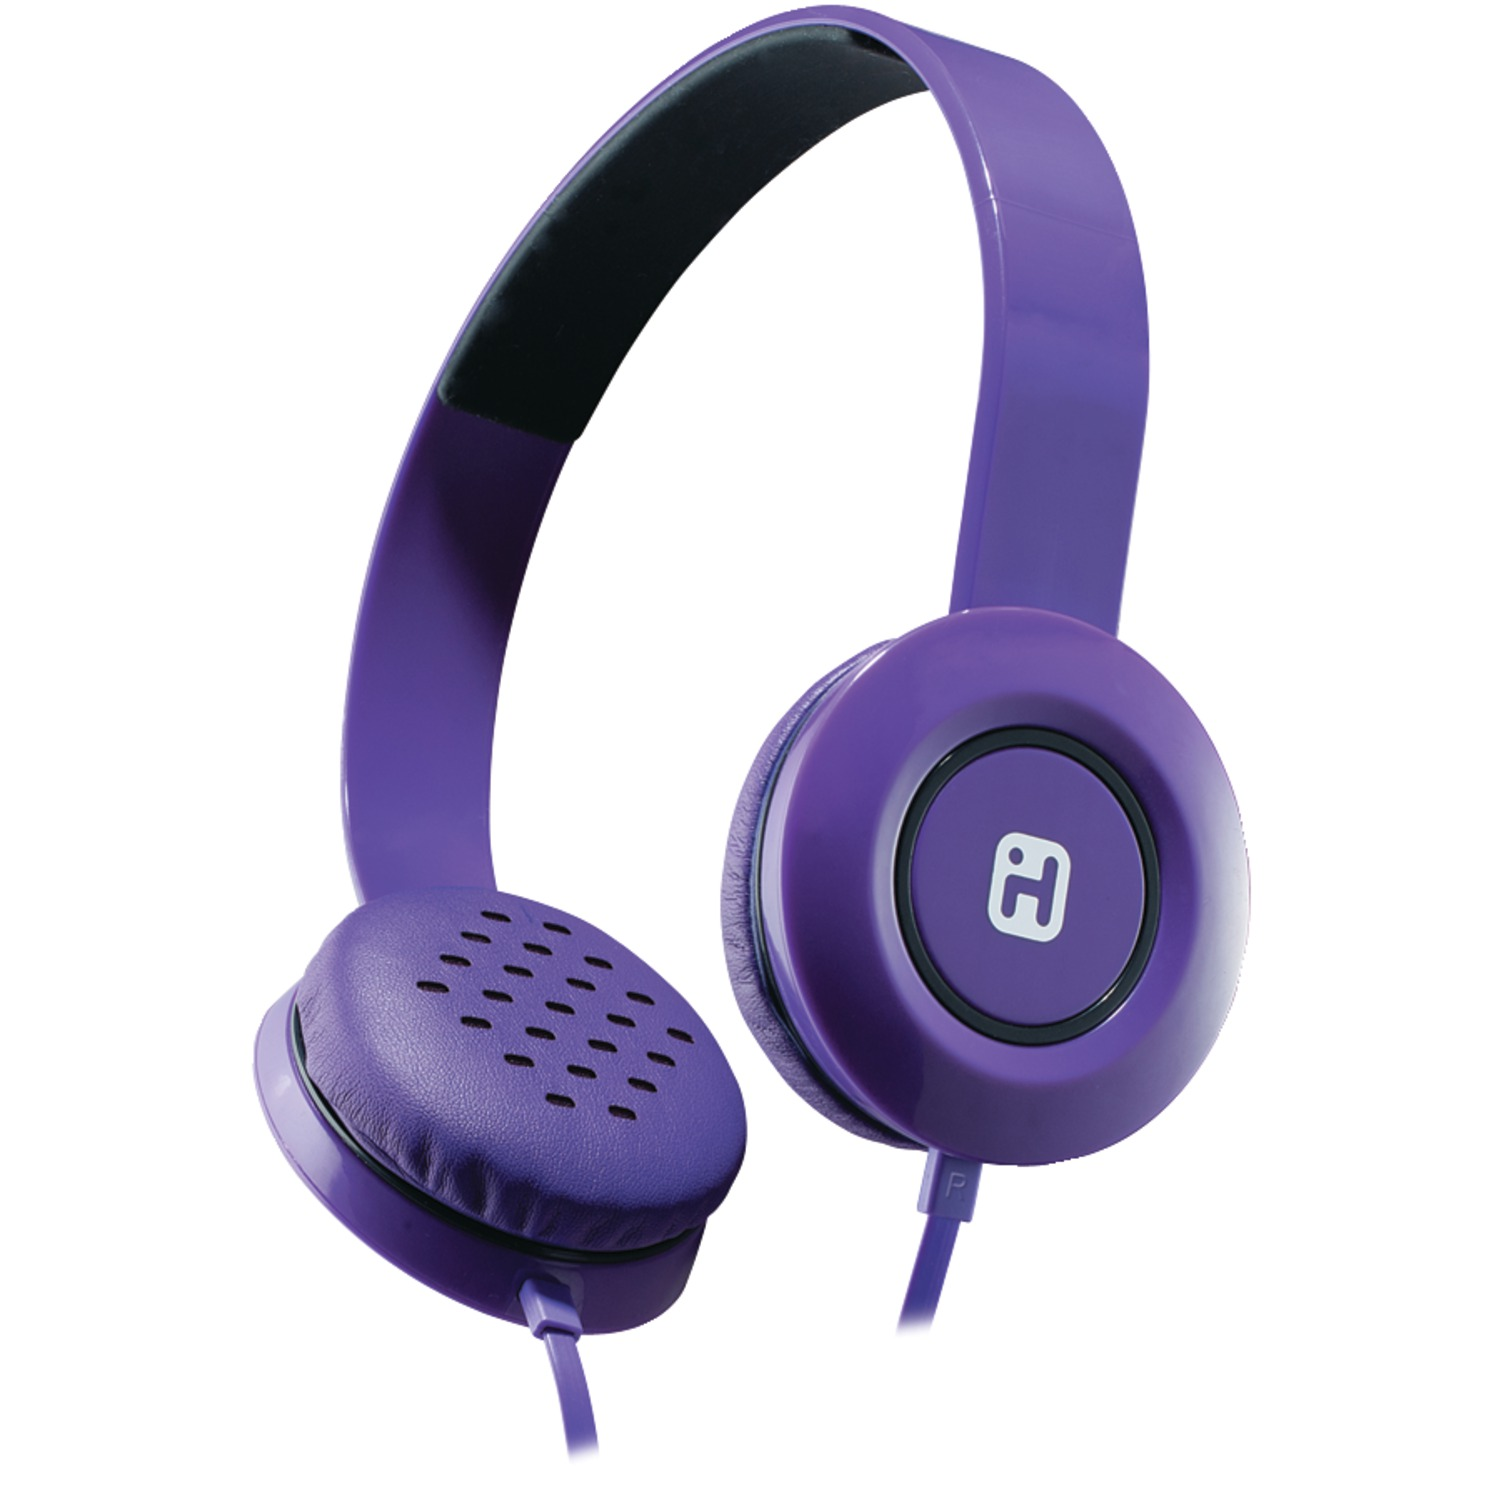 iHome IB35UBC Stereo Headphones with Flat Cable (Purple)